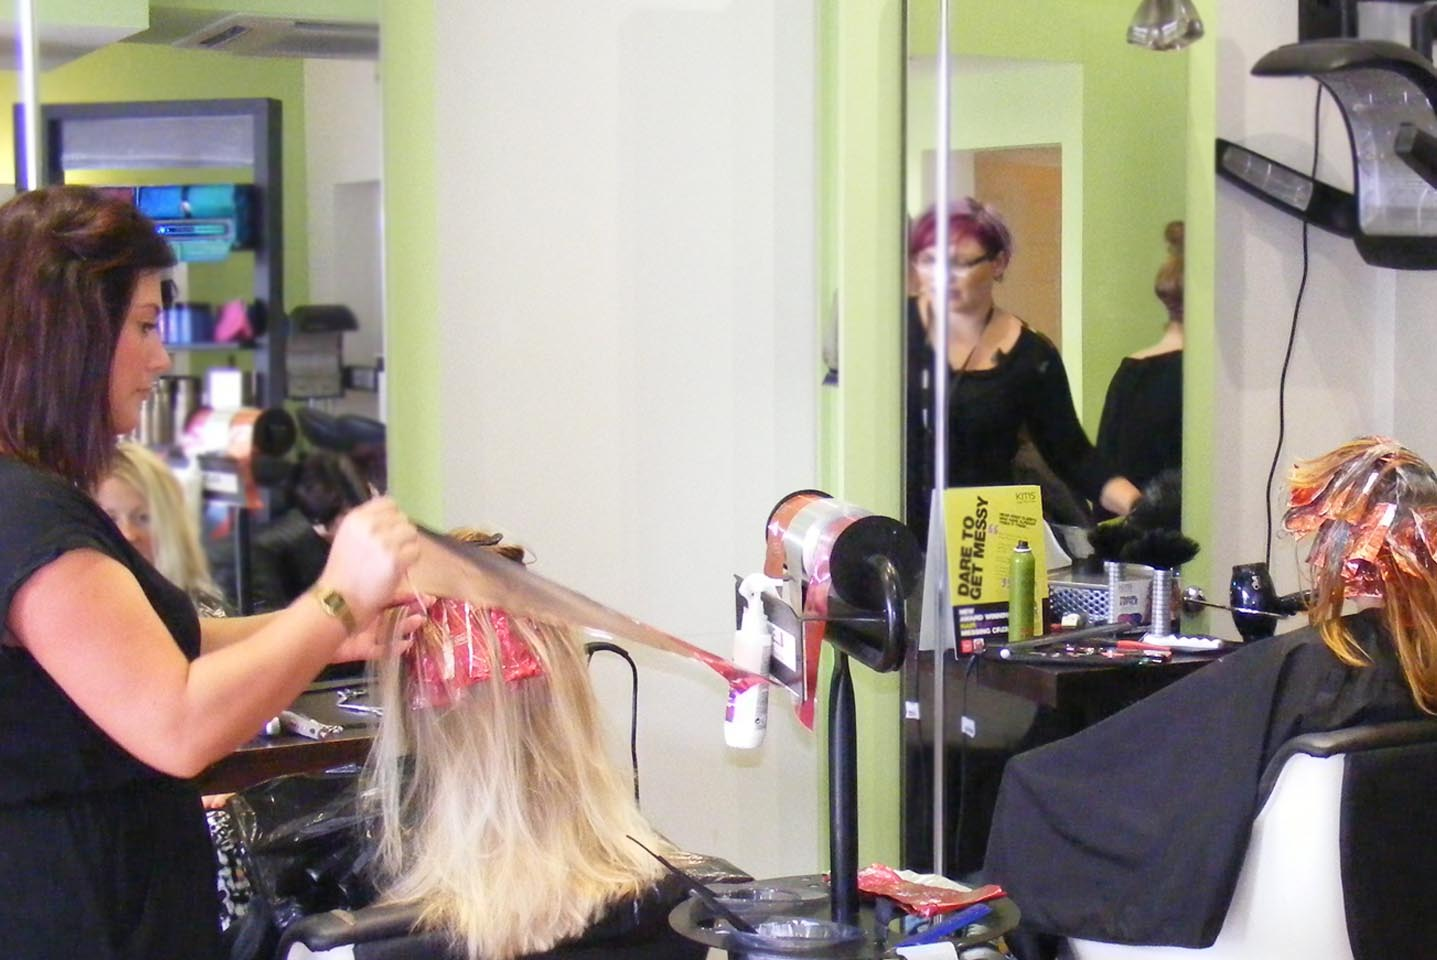 Hair Stylist styles clients hair in busy Hair Salon - Nuneaton Hair Salon - Hair Cutts